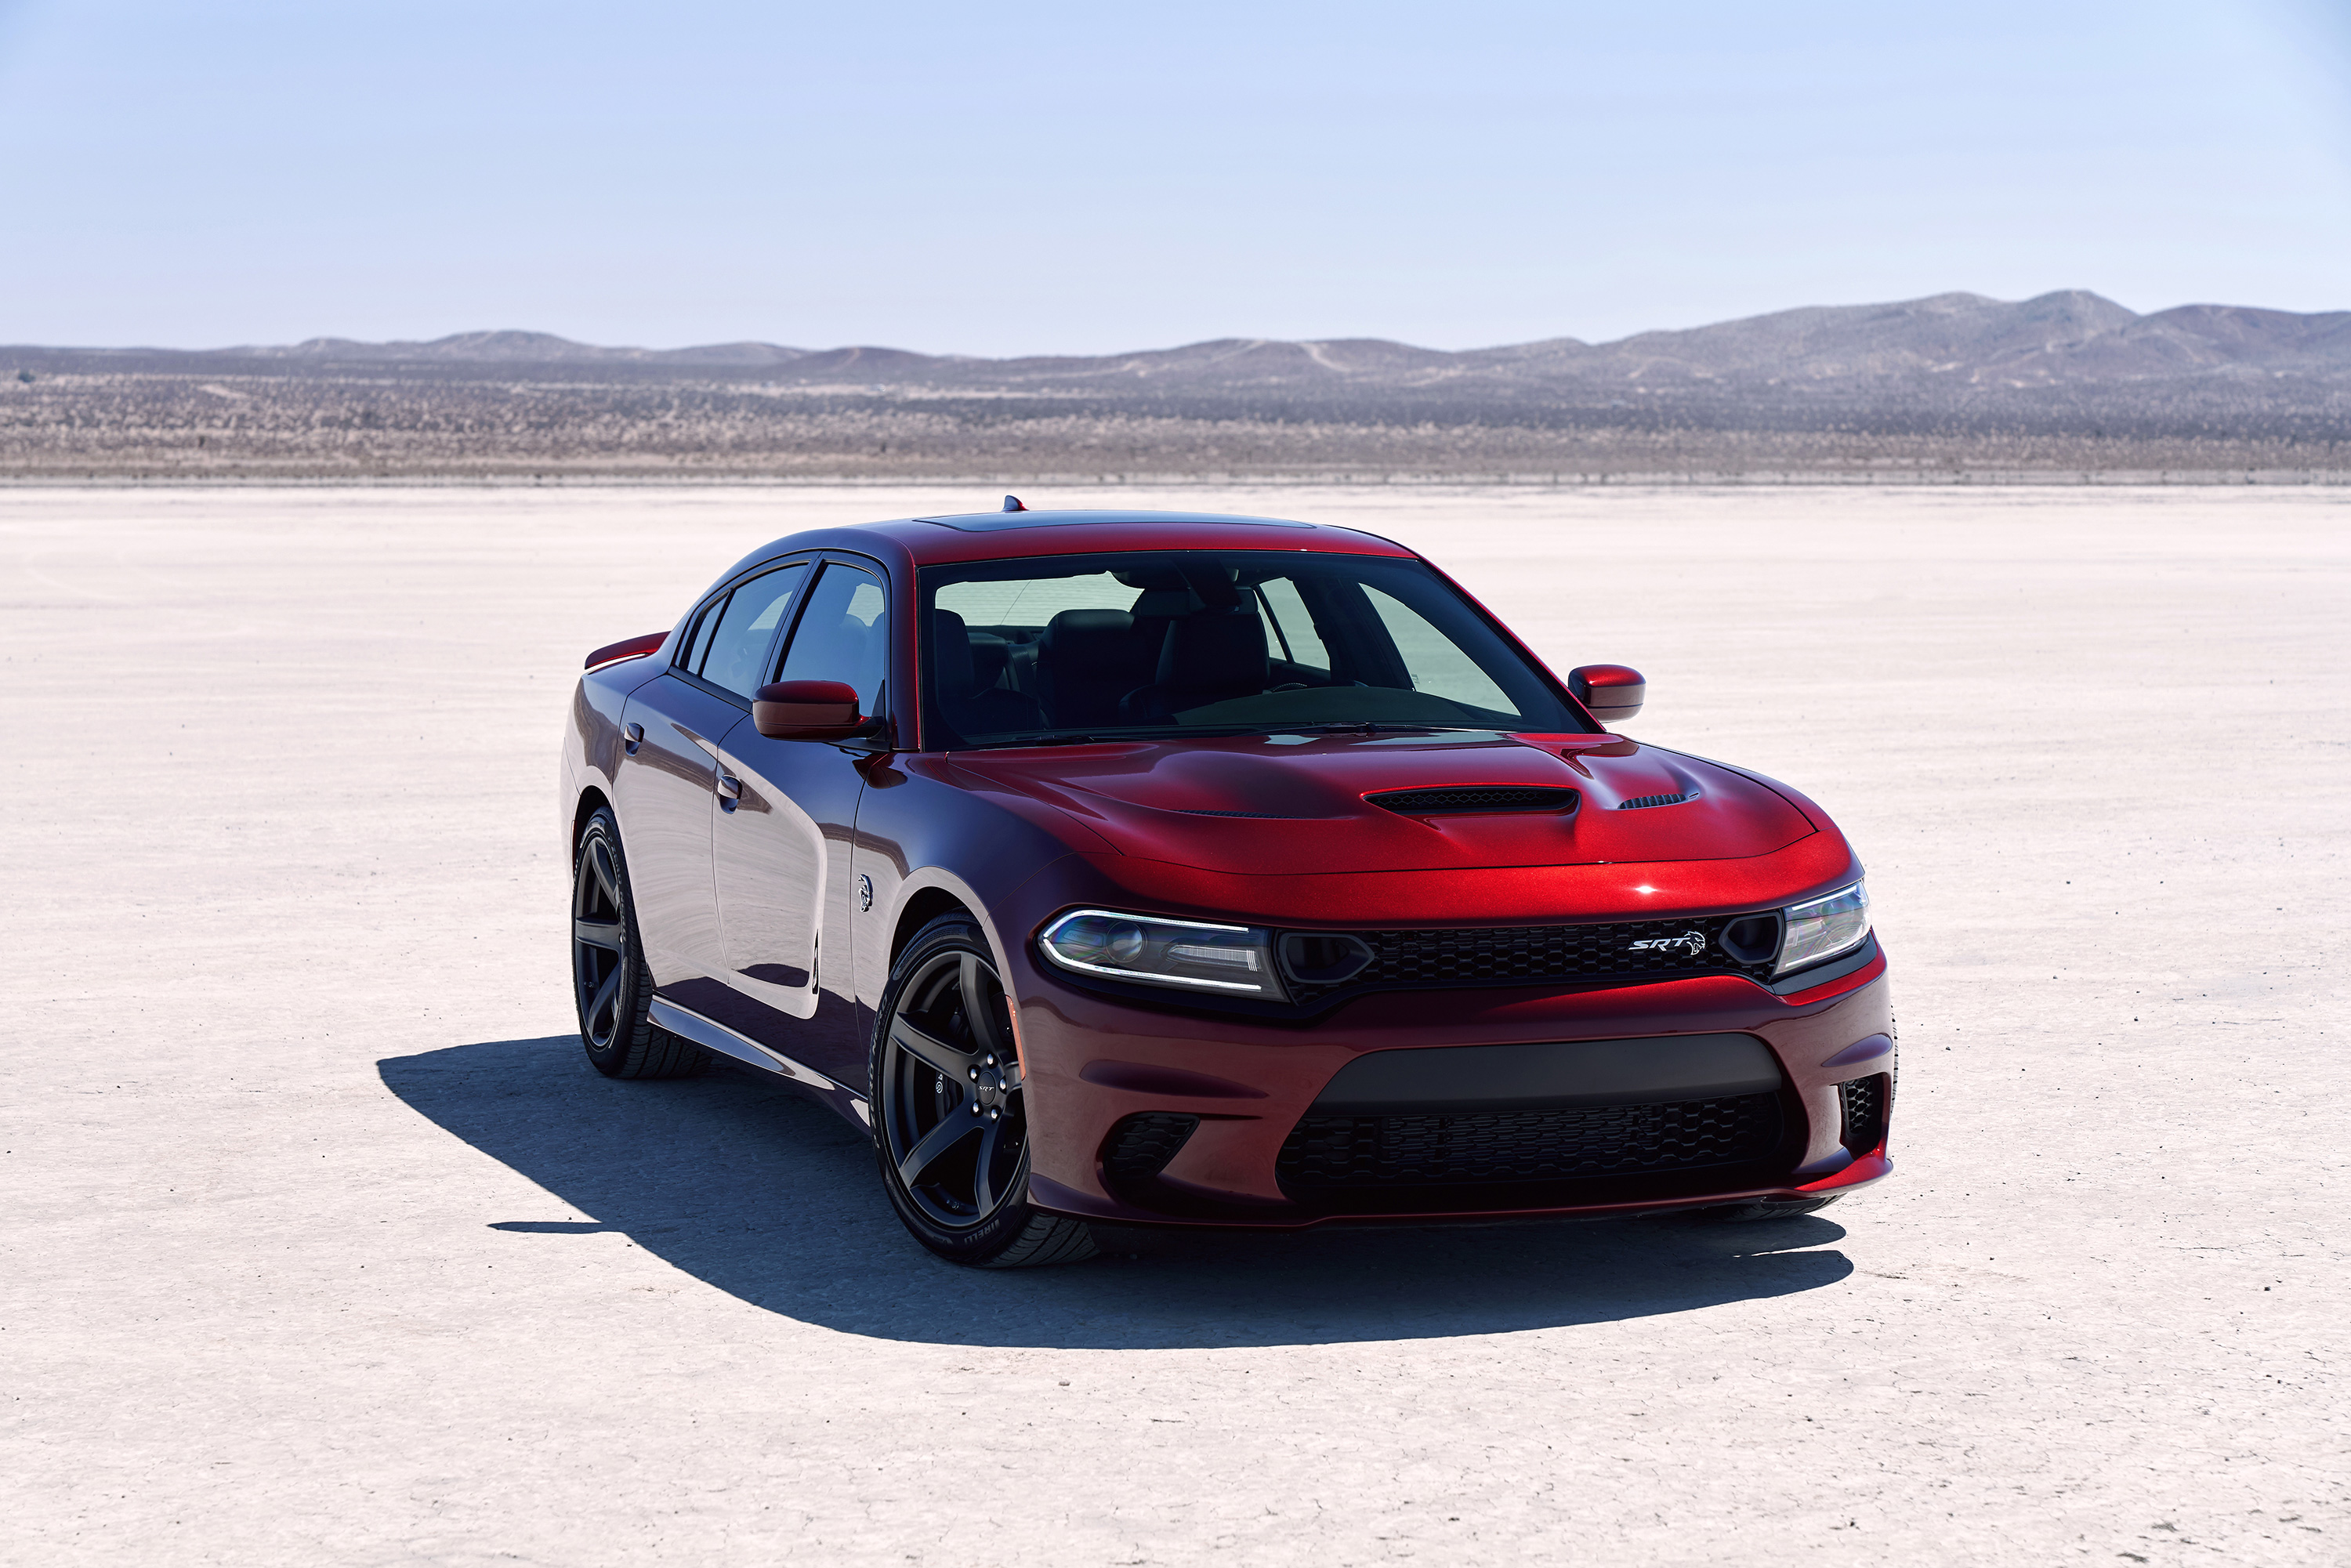 Dodge Charger Srt Hellcat 2019 Hd Cars 4k Wallpapers